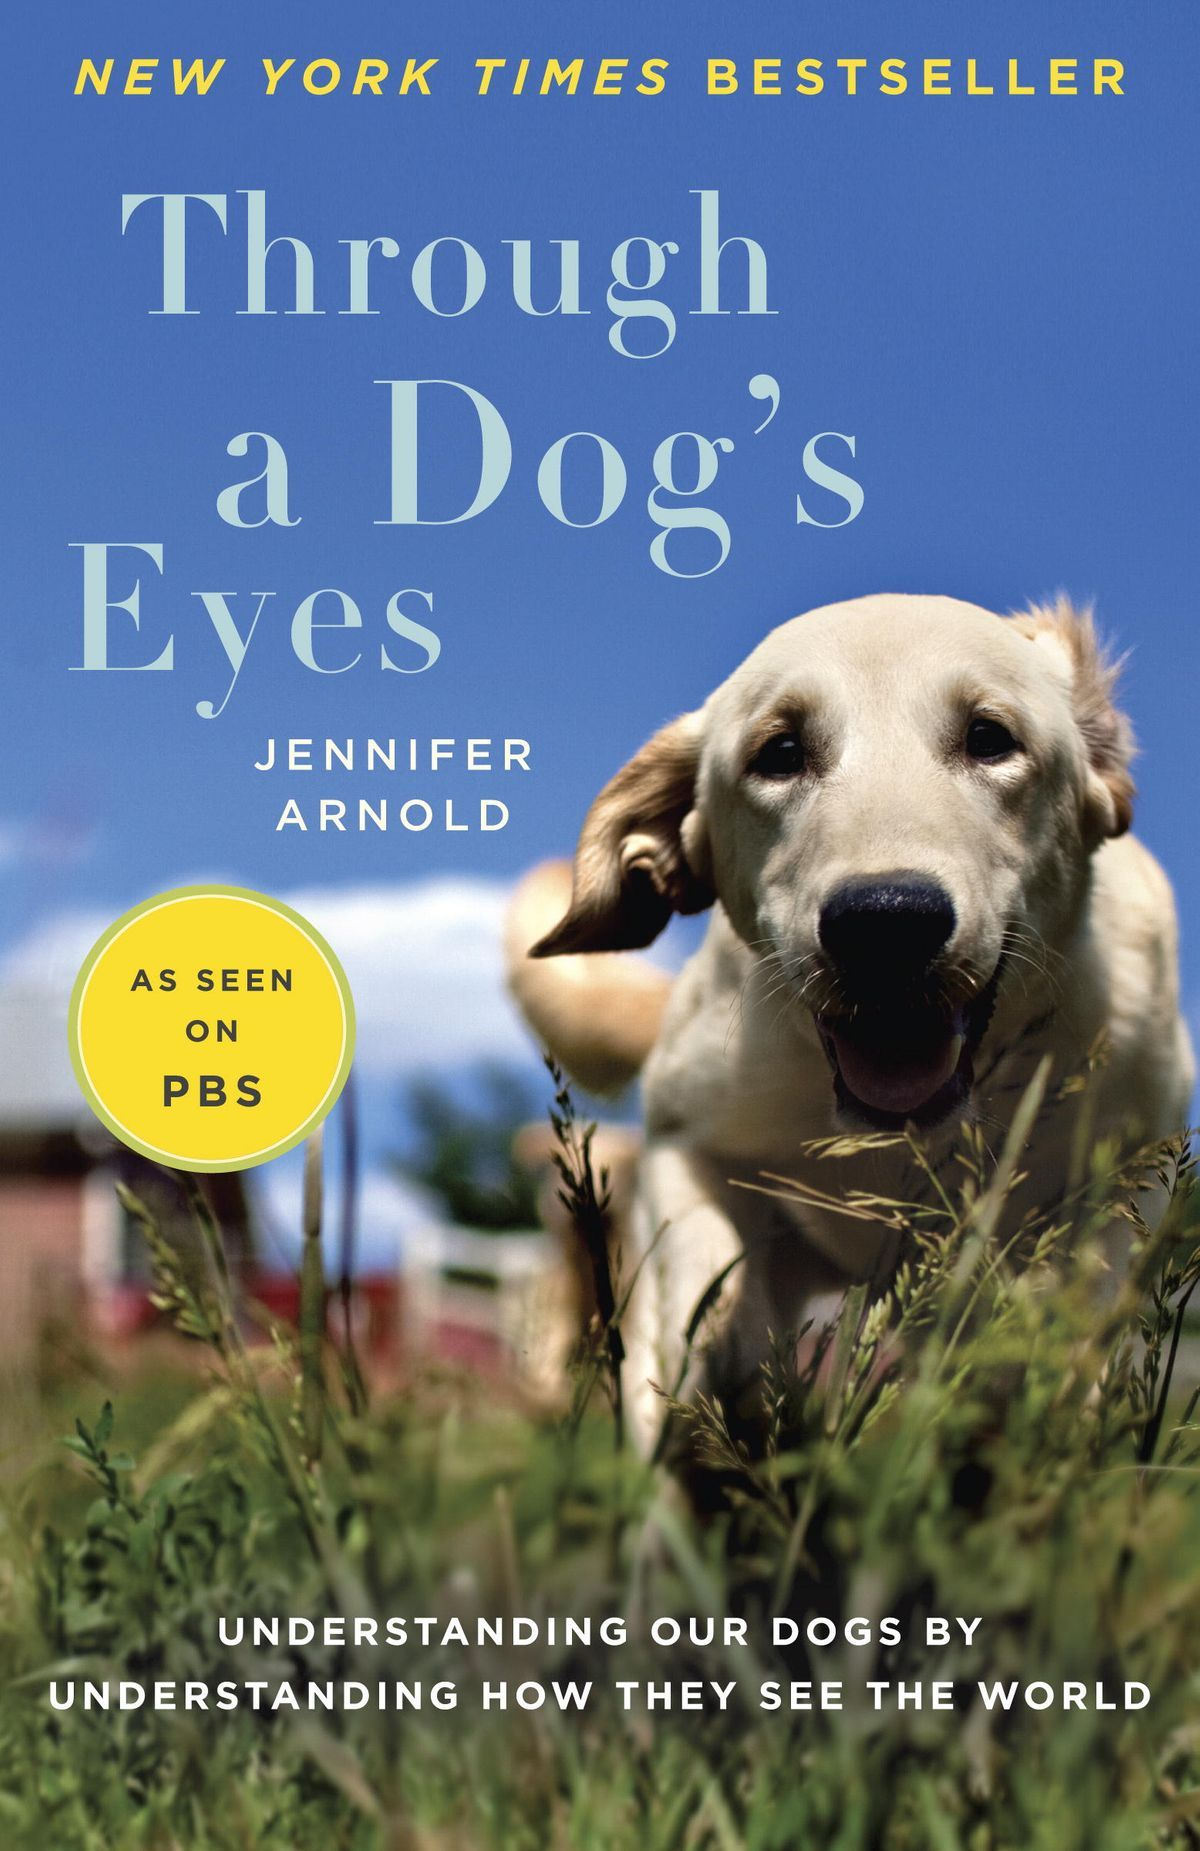 Through a Dog's Eyes ebook by Jennifer Arnold (With images